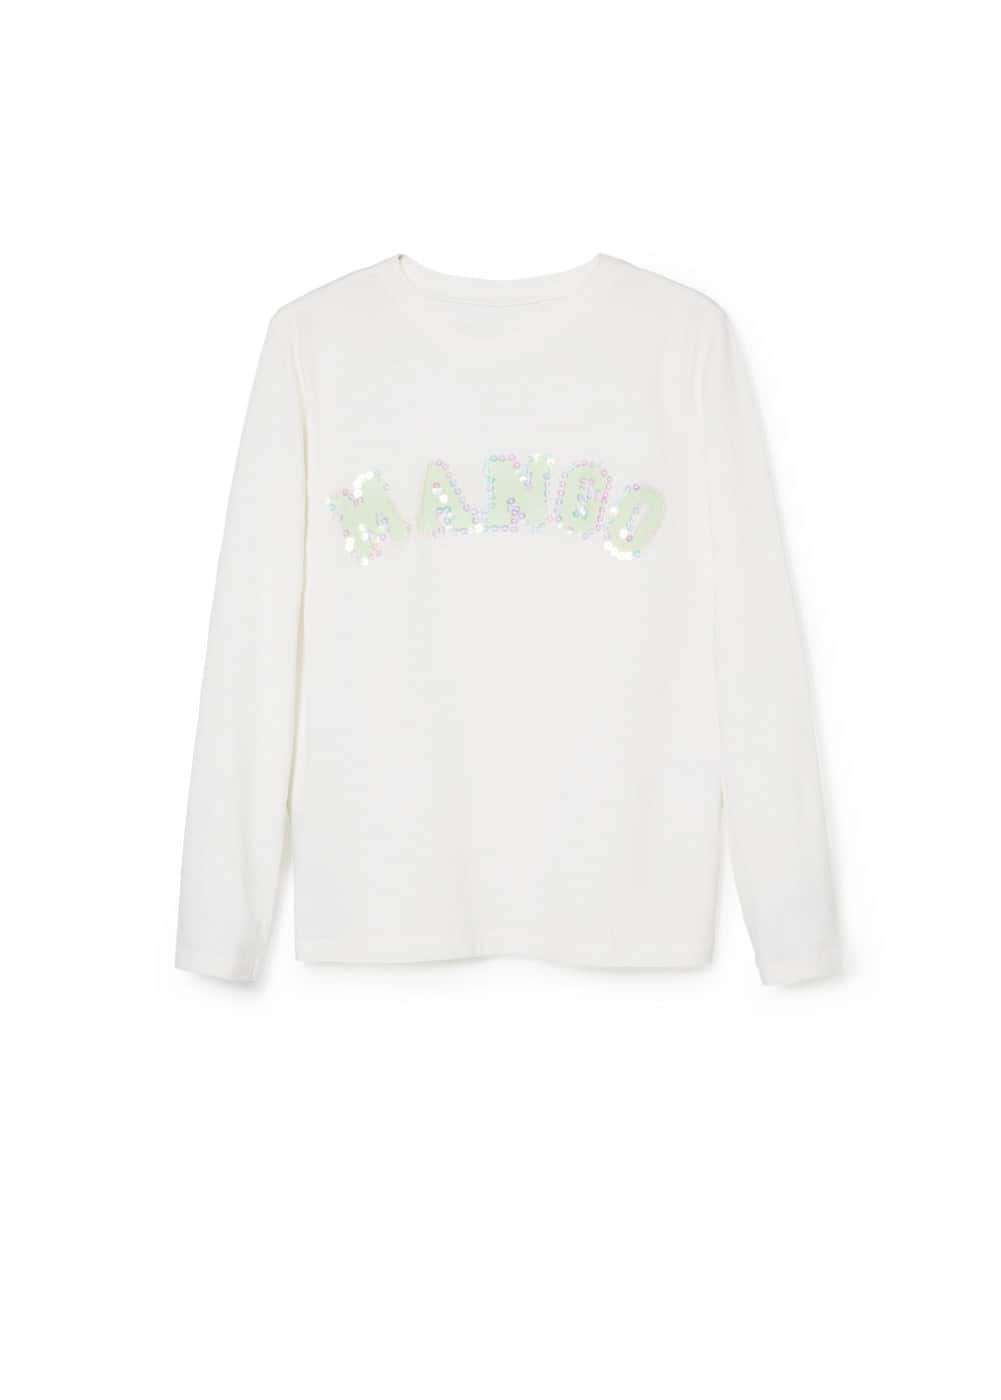 Sequin logo t-shirt | MANGO